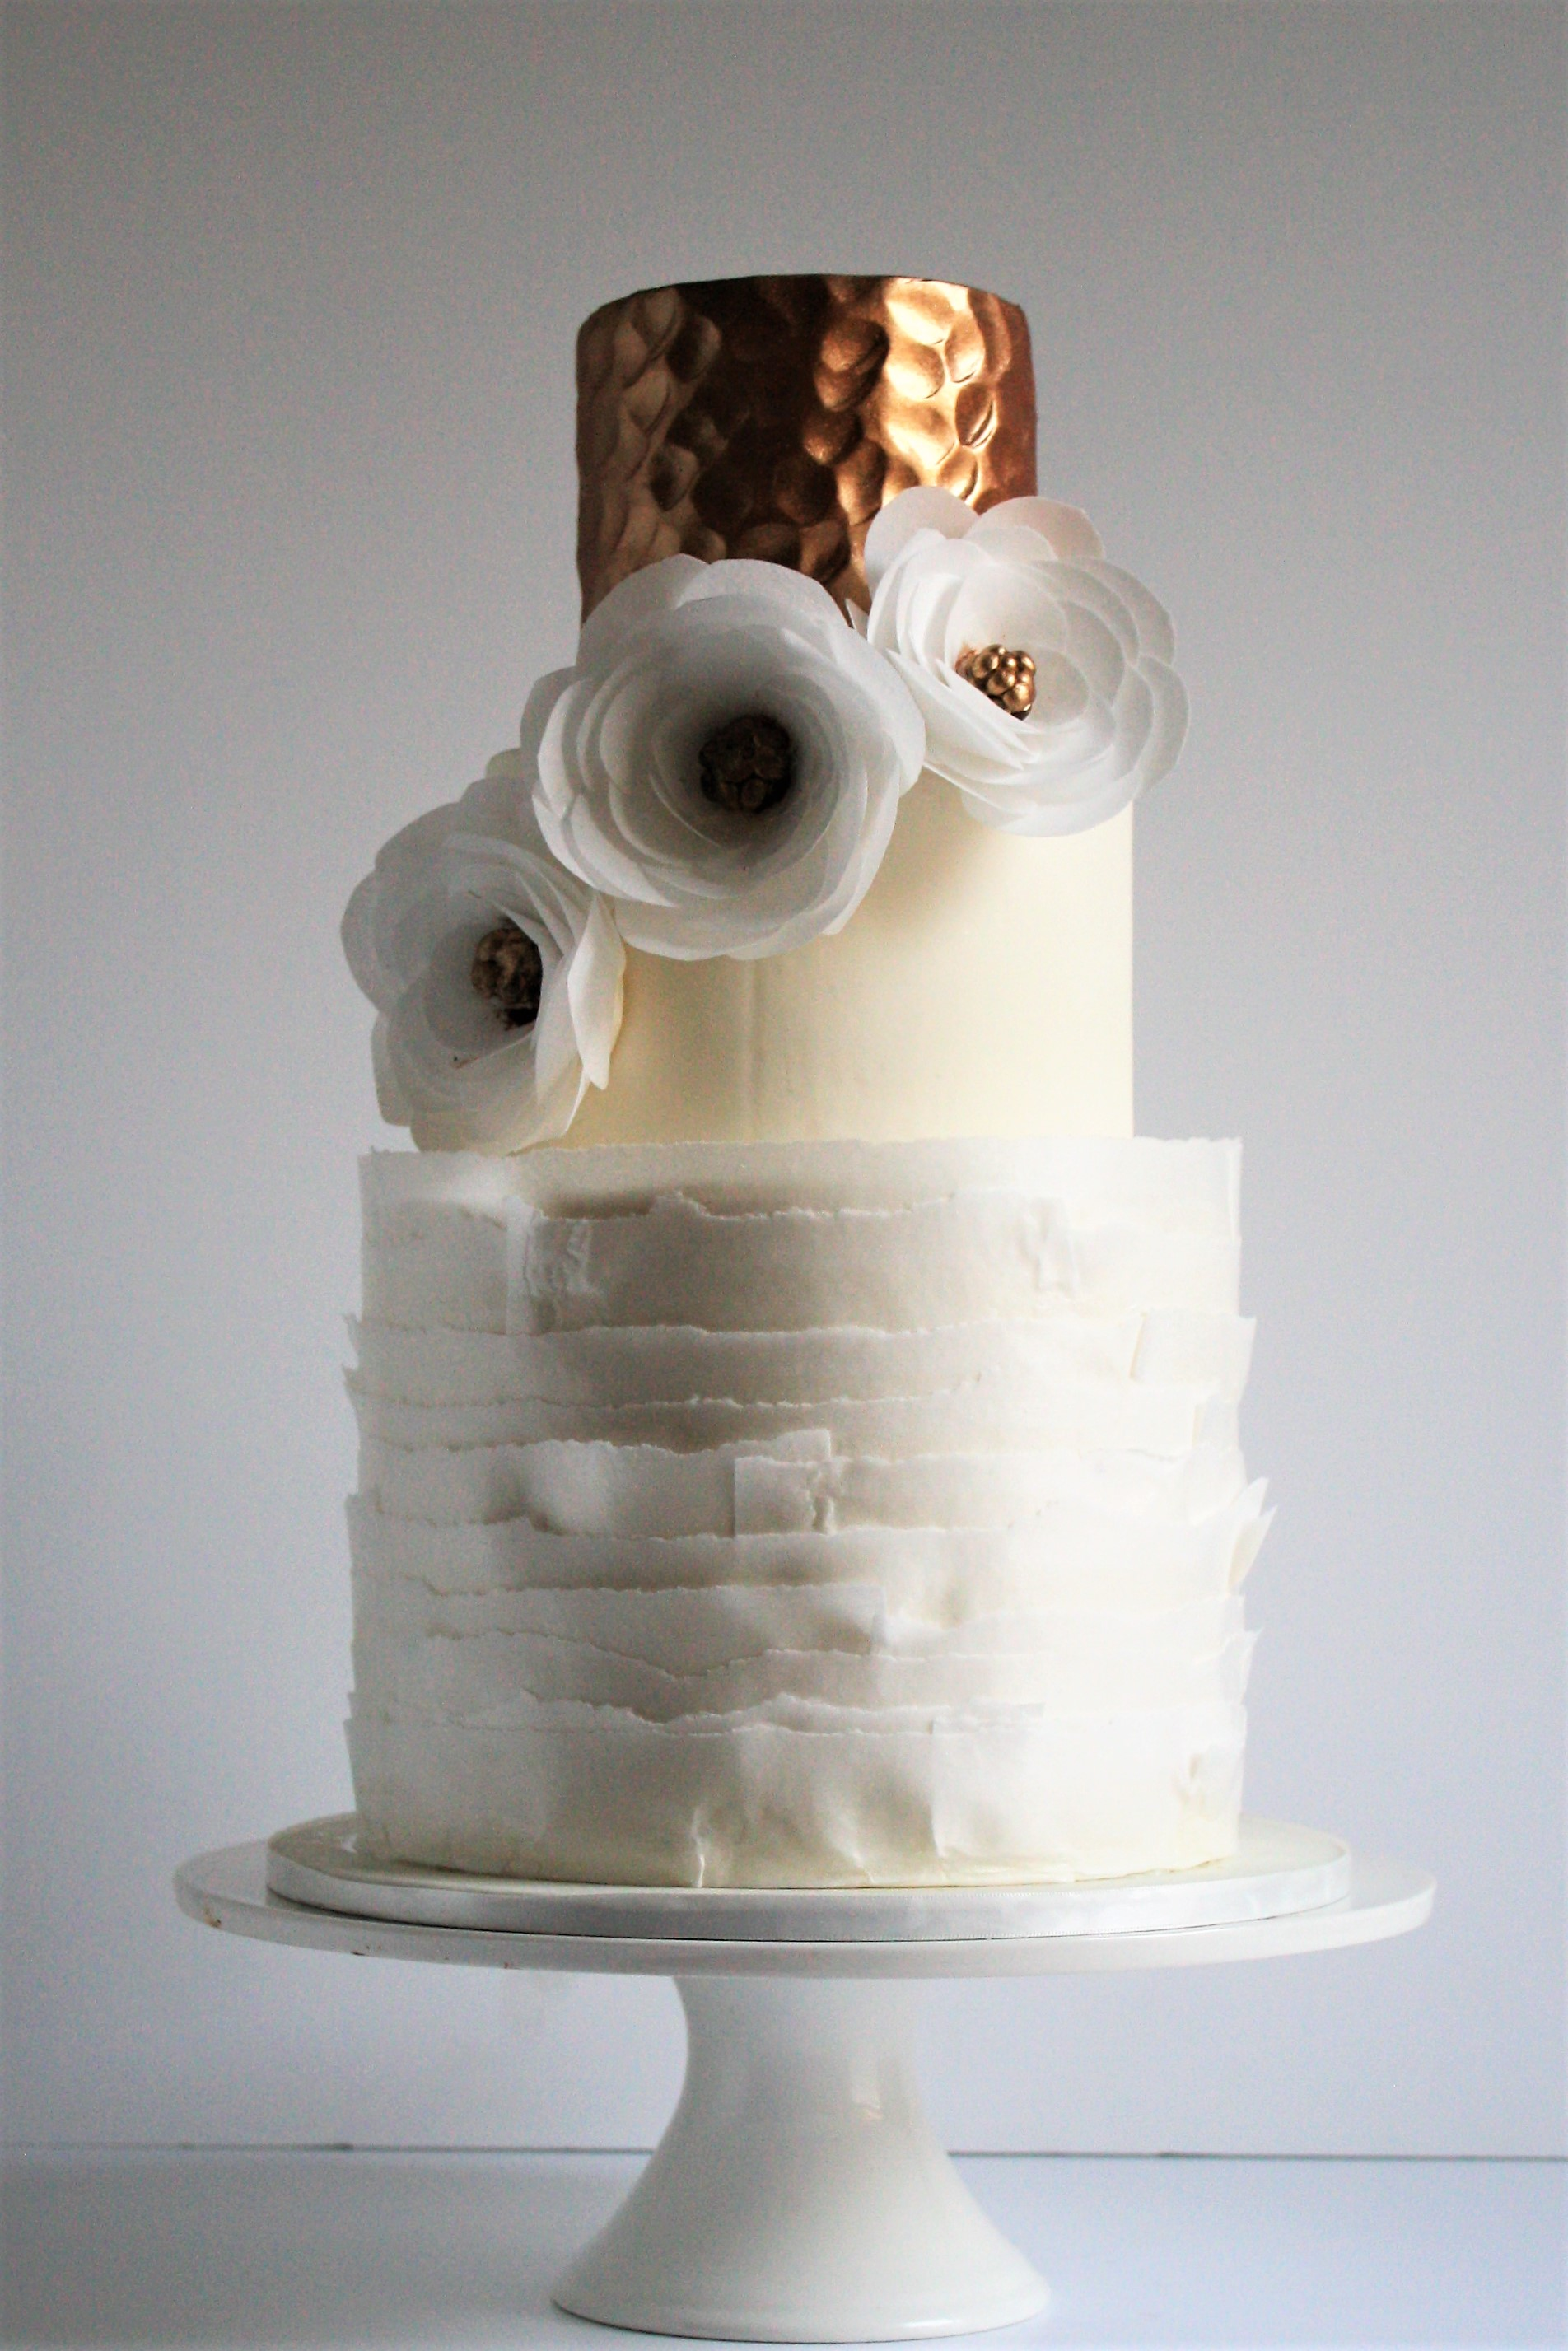 Hammered Copper and Wafer paper ruffle wedding cake with wafer paper flowers